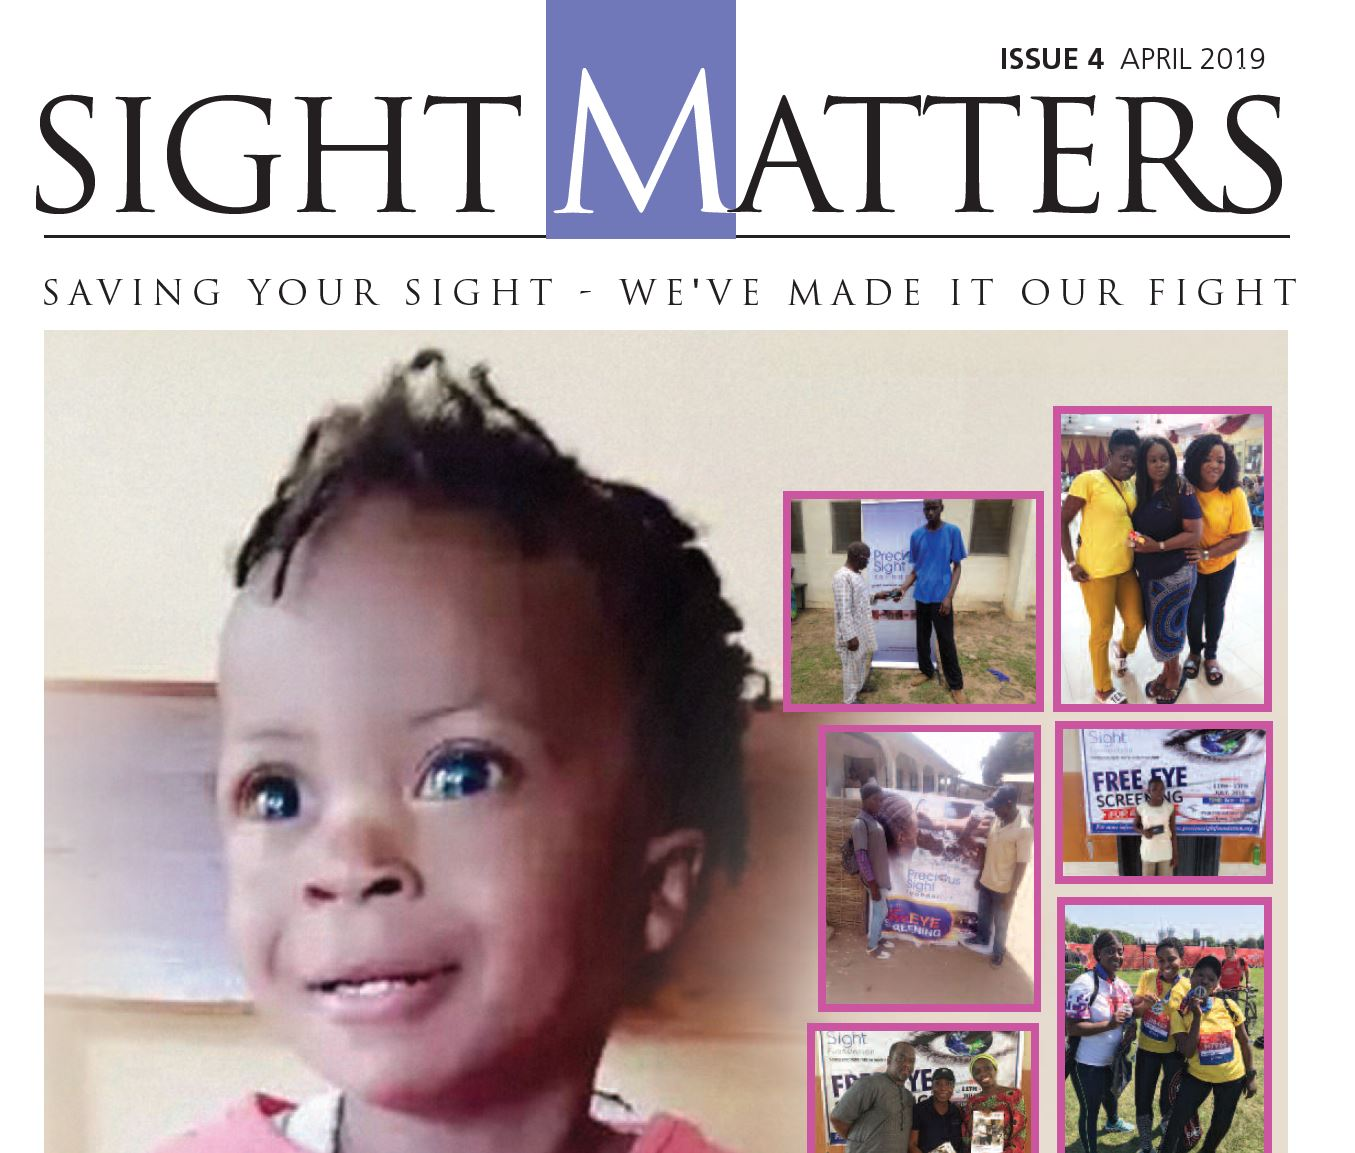 Sight Matters – Issue 4 April 2019